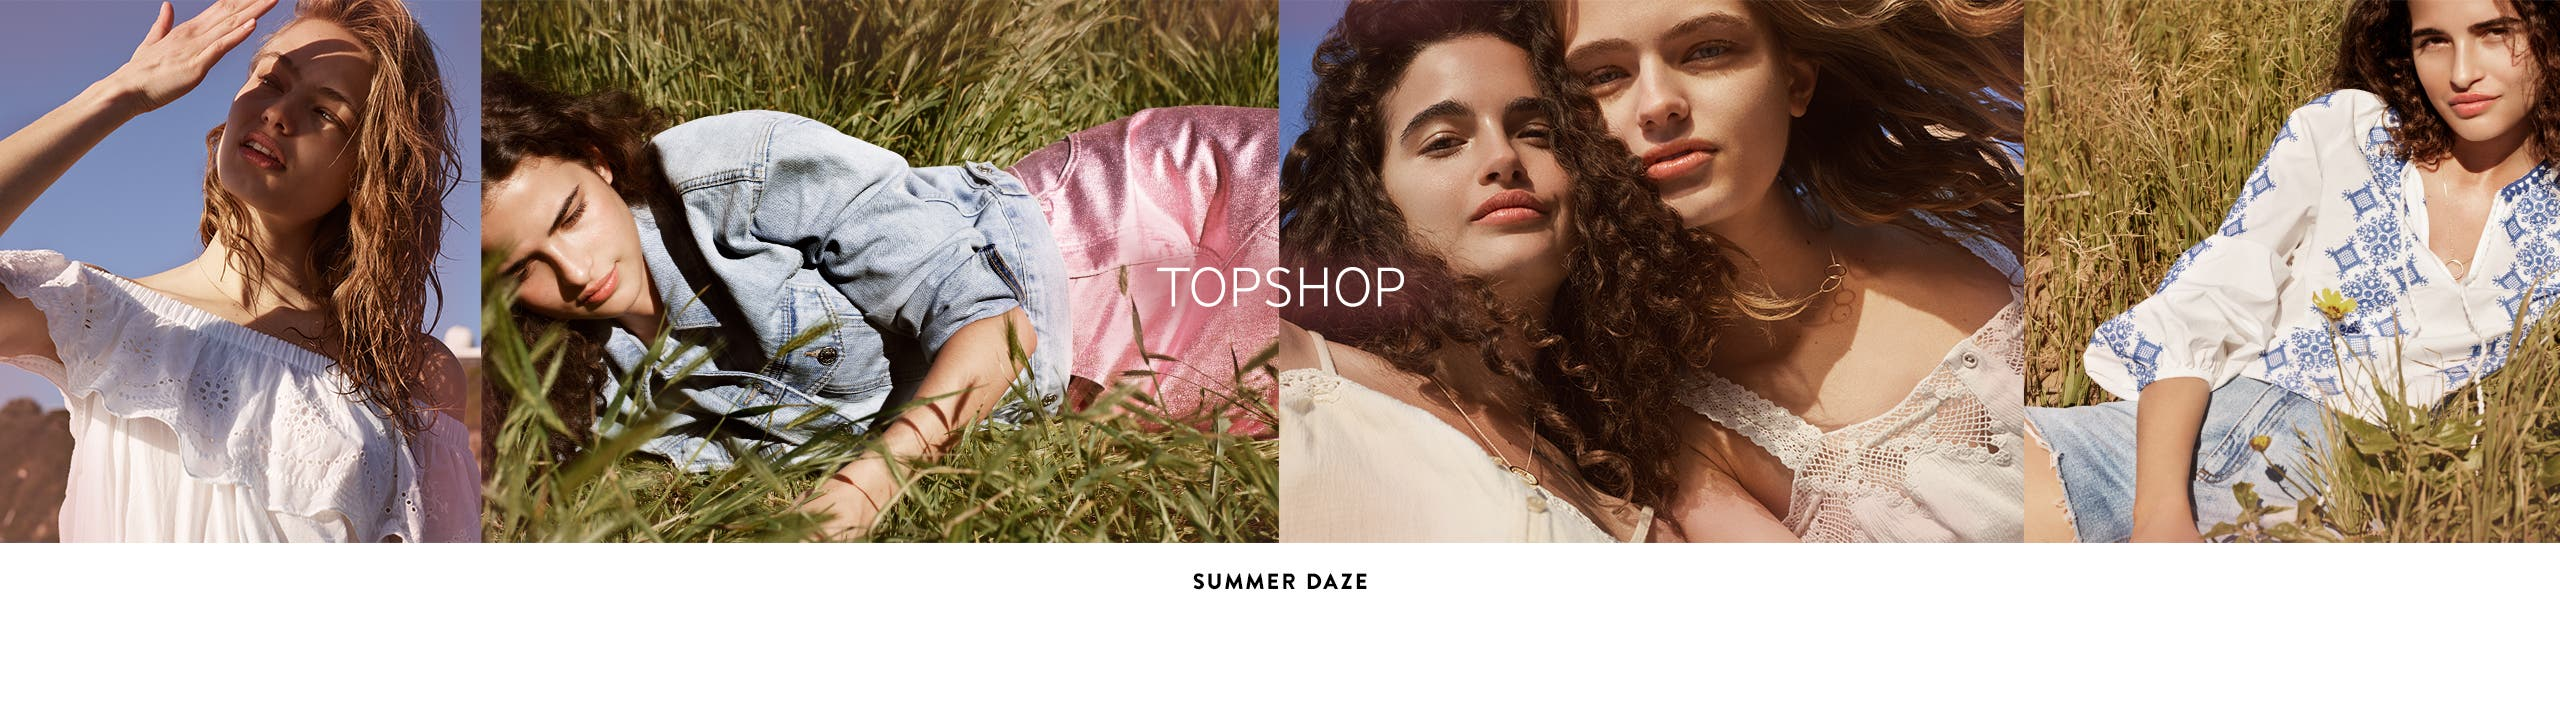 Topshop summer daze.